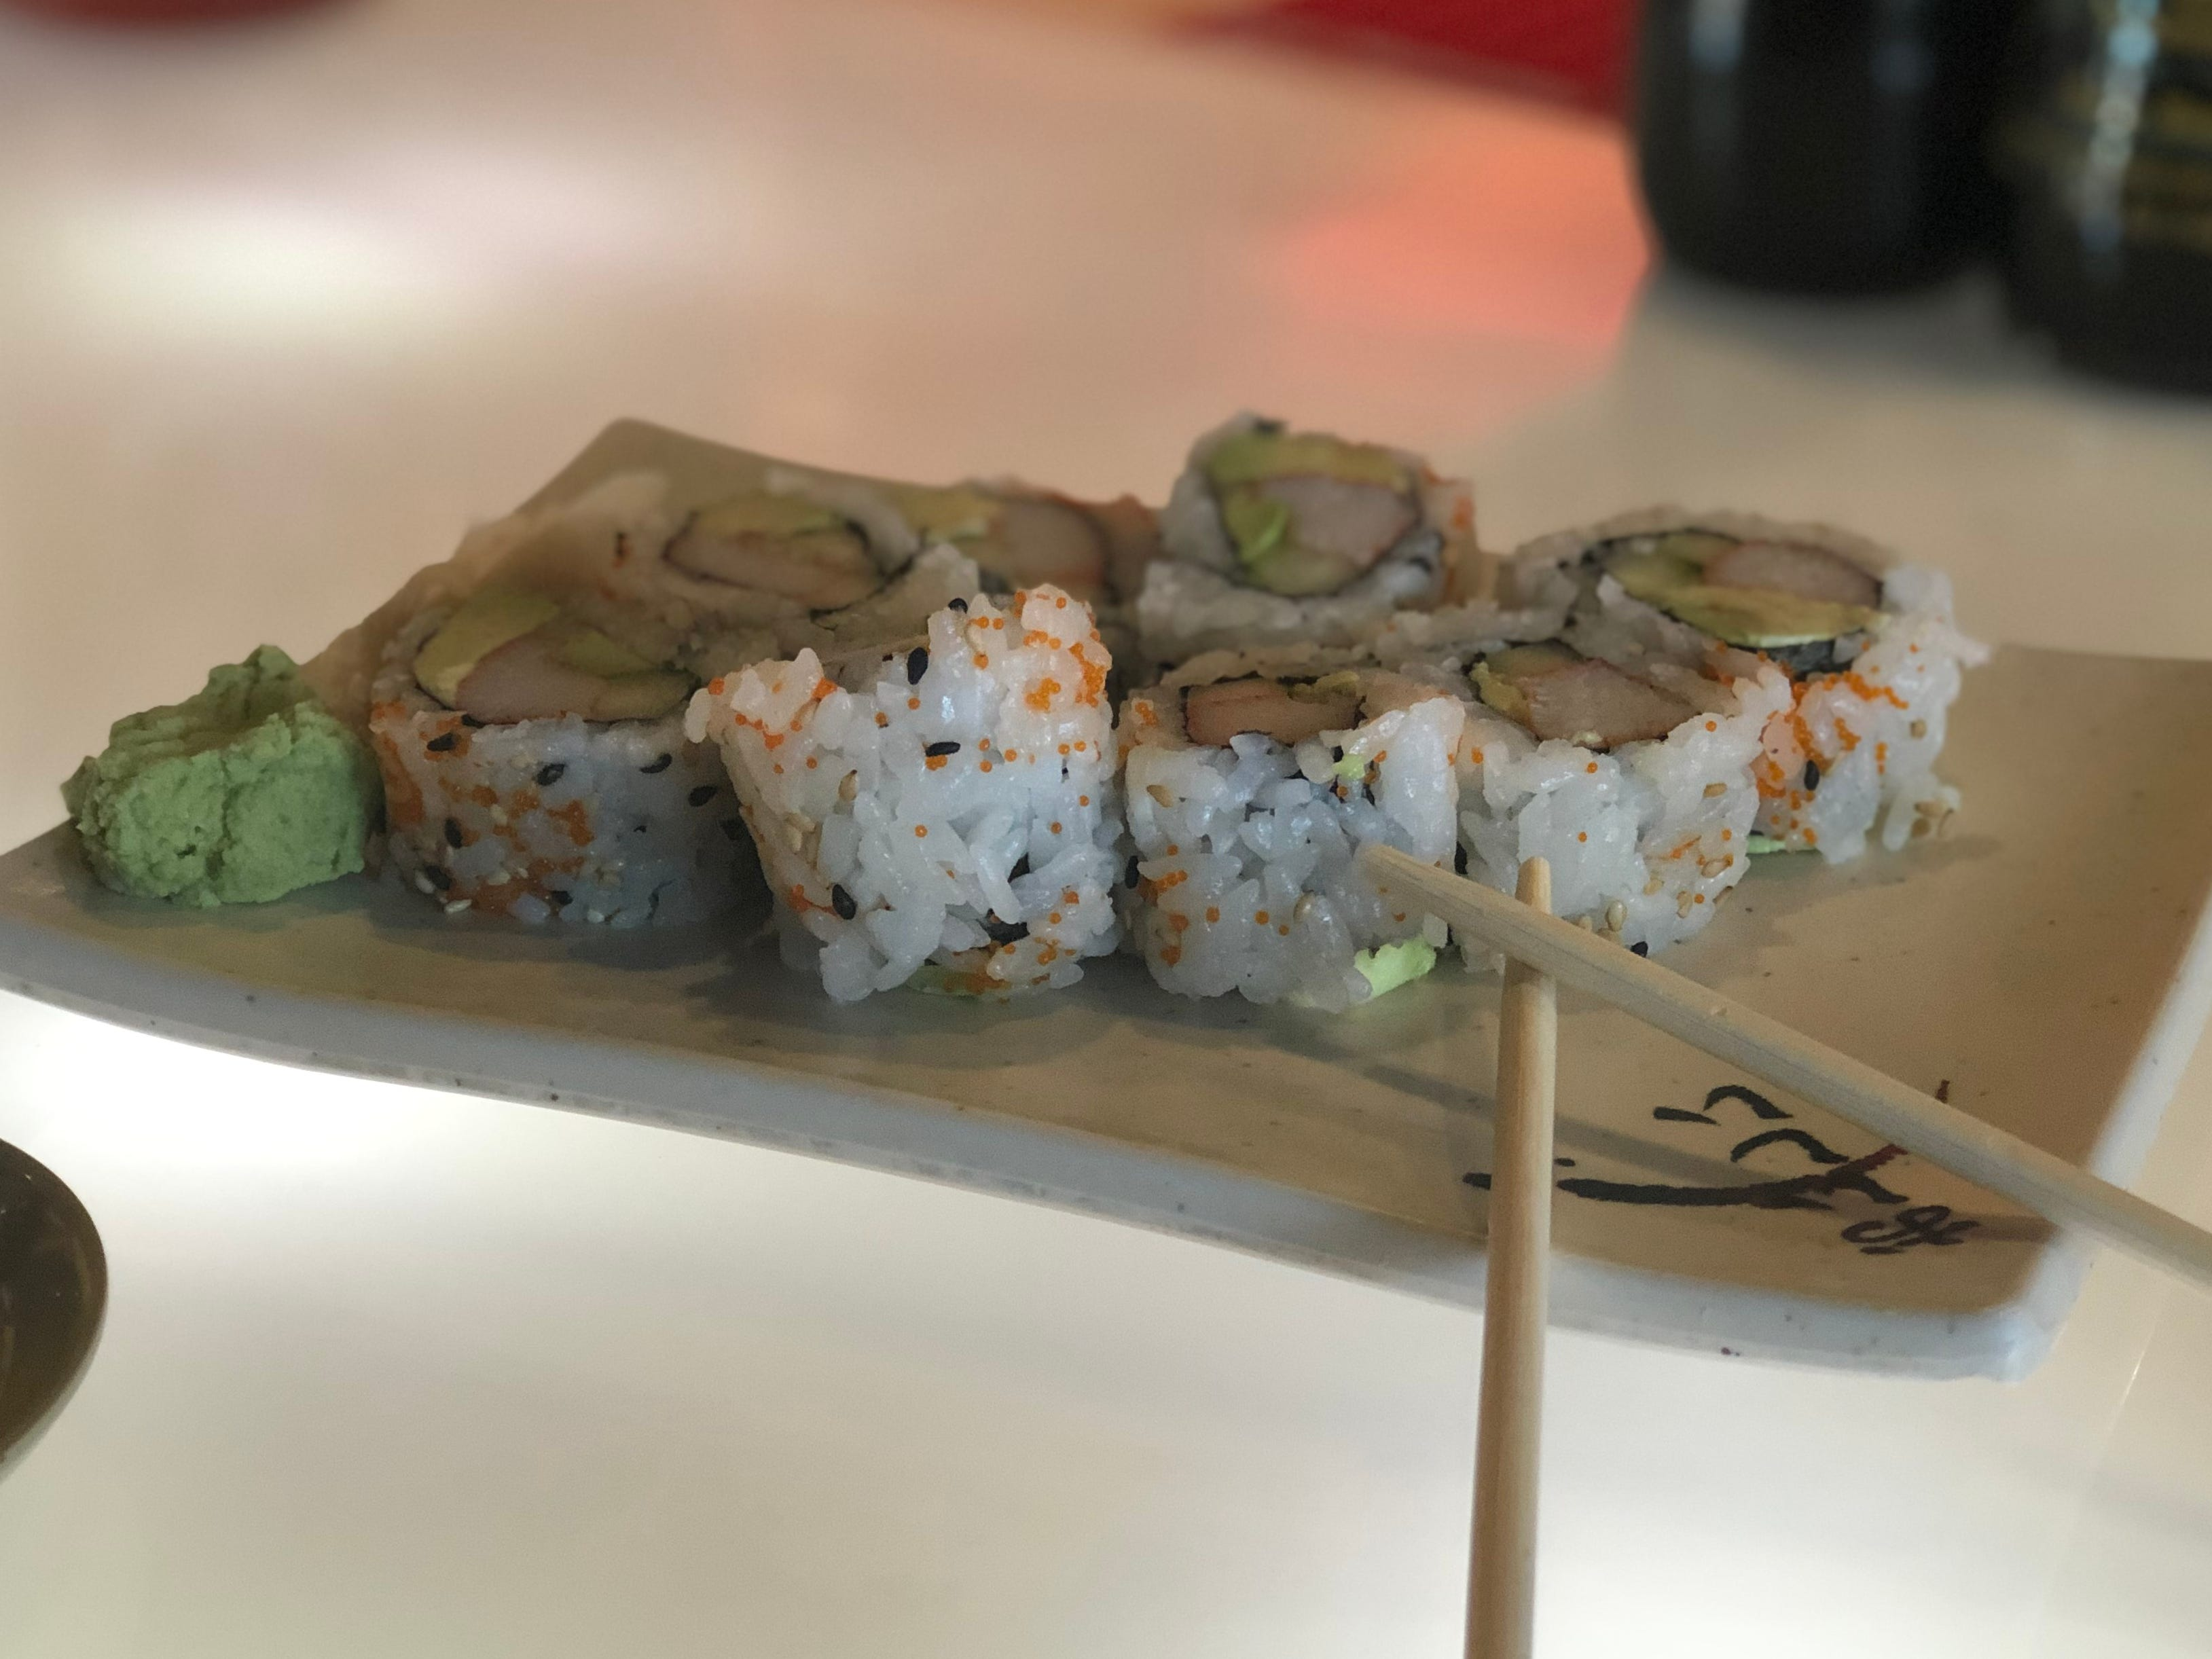 California sushi rolls at Asia Cafe in Powell